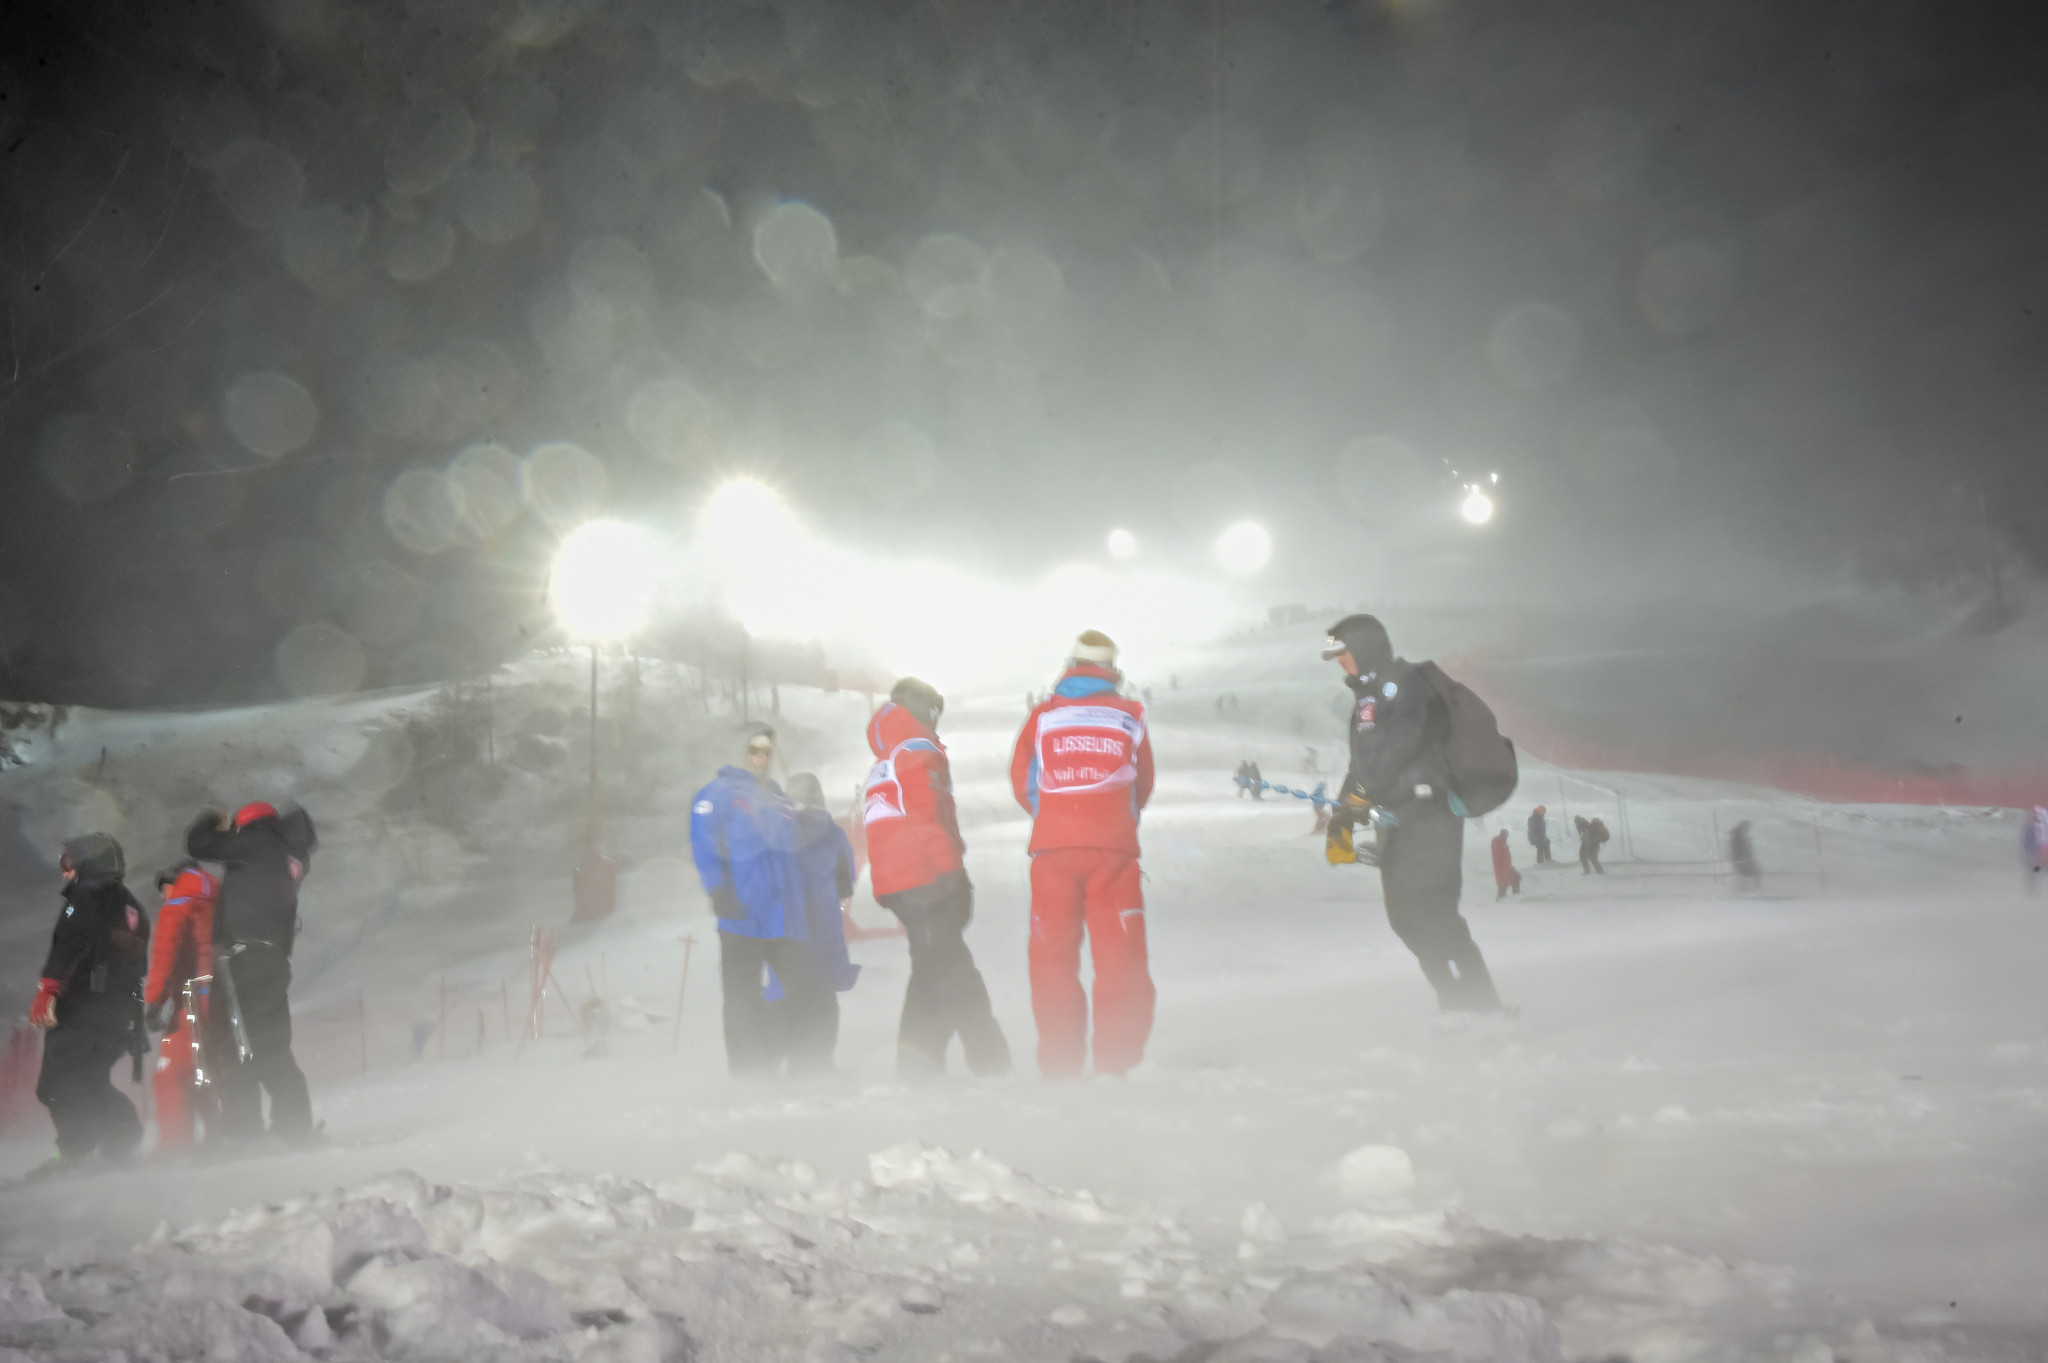 FIS Alpine Ski World Cup event in Val d'Isère cancelled due to heavy snow